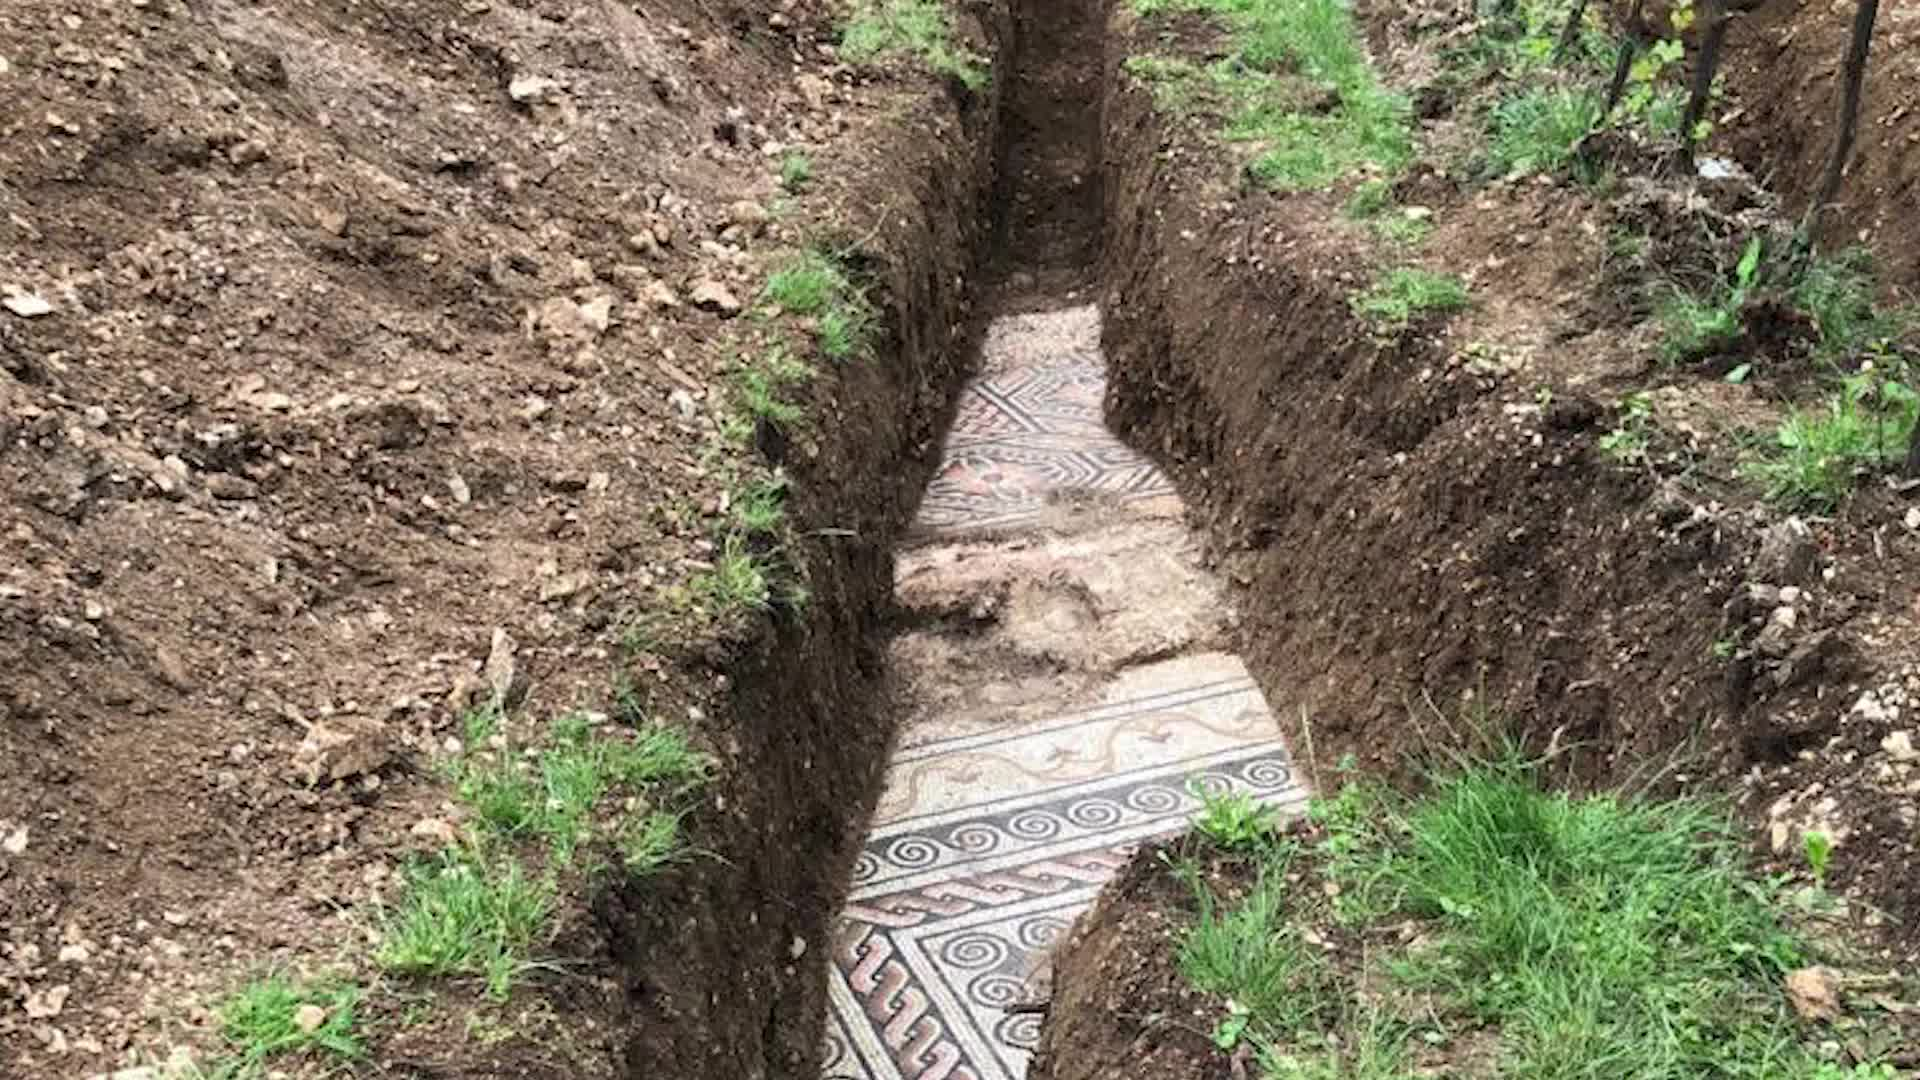 A mosaic tile floor was discovered buried under a vineyard in a small town north of Verona, Italy.